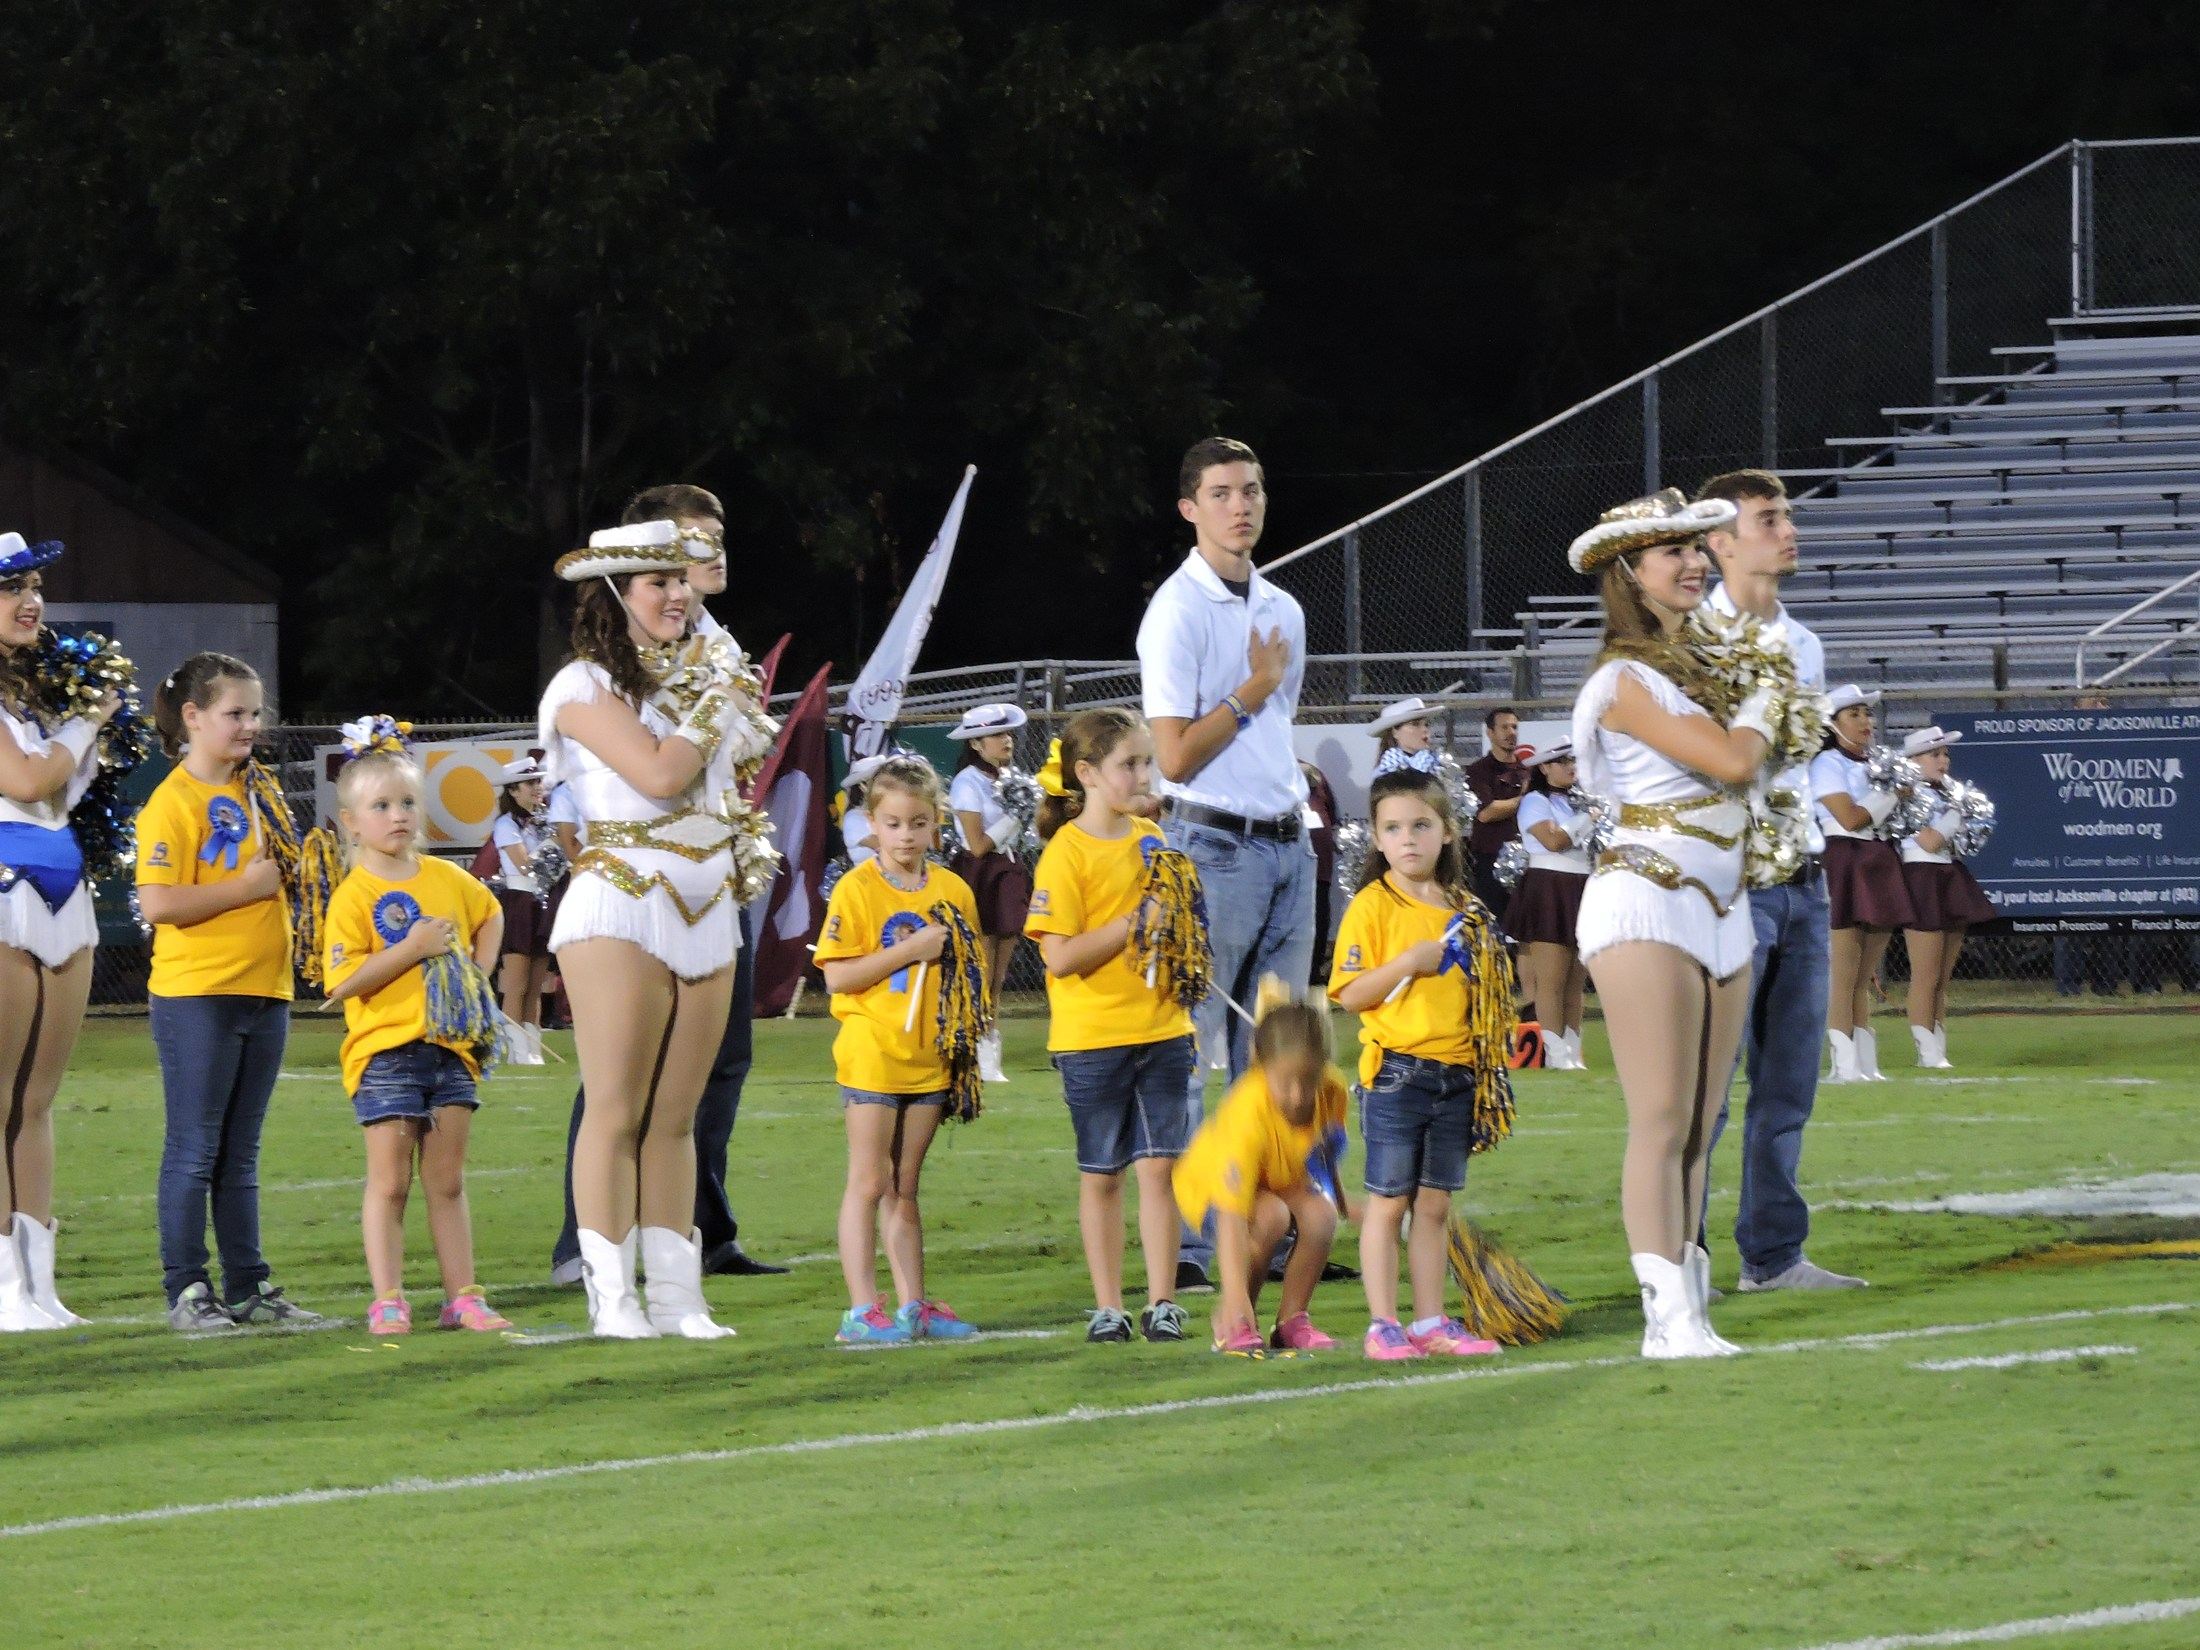 Charmers with little charmers on the field